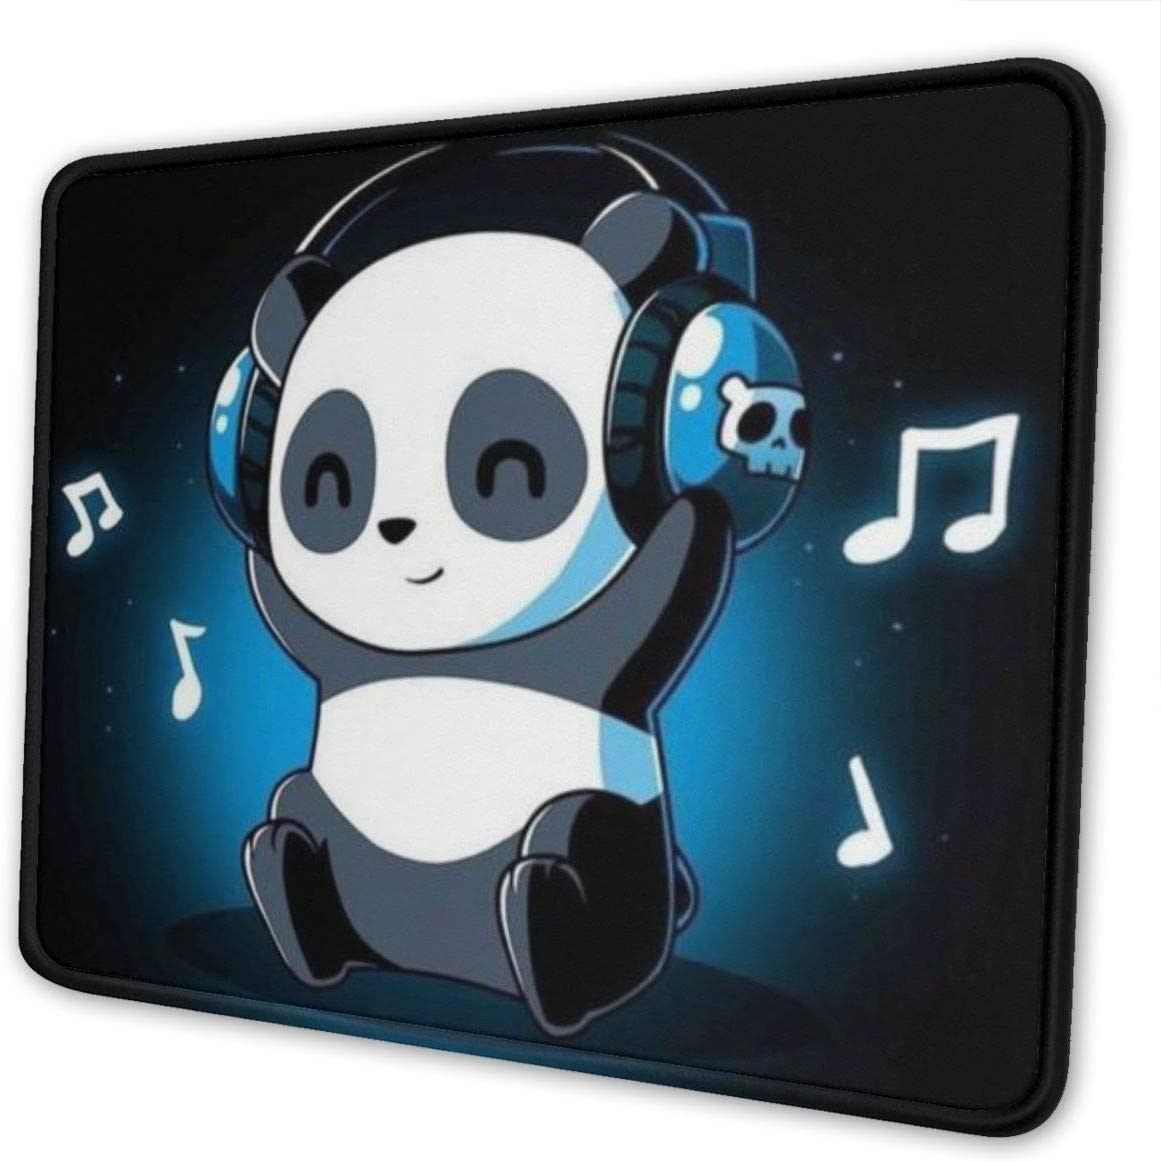 Dj Panda Pattern Gaming Mouse Pad with Stitched Edge Premium-Textured Mat Non-Slip Rubber Base for Desktop Laptop Computers Keyboard Office 10×12 Inches